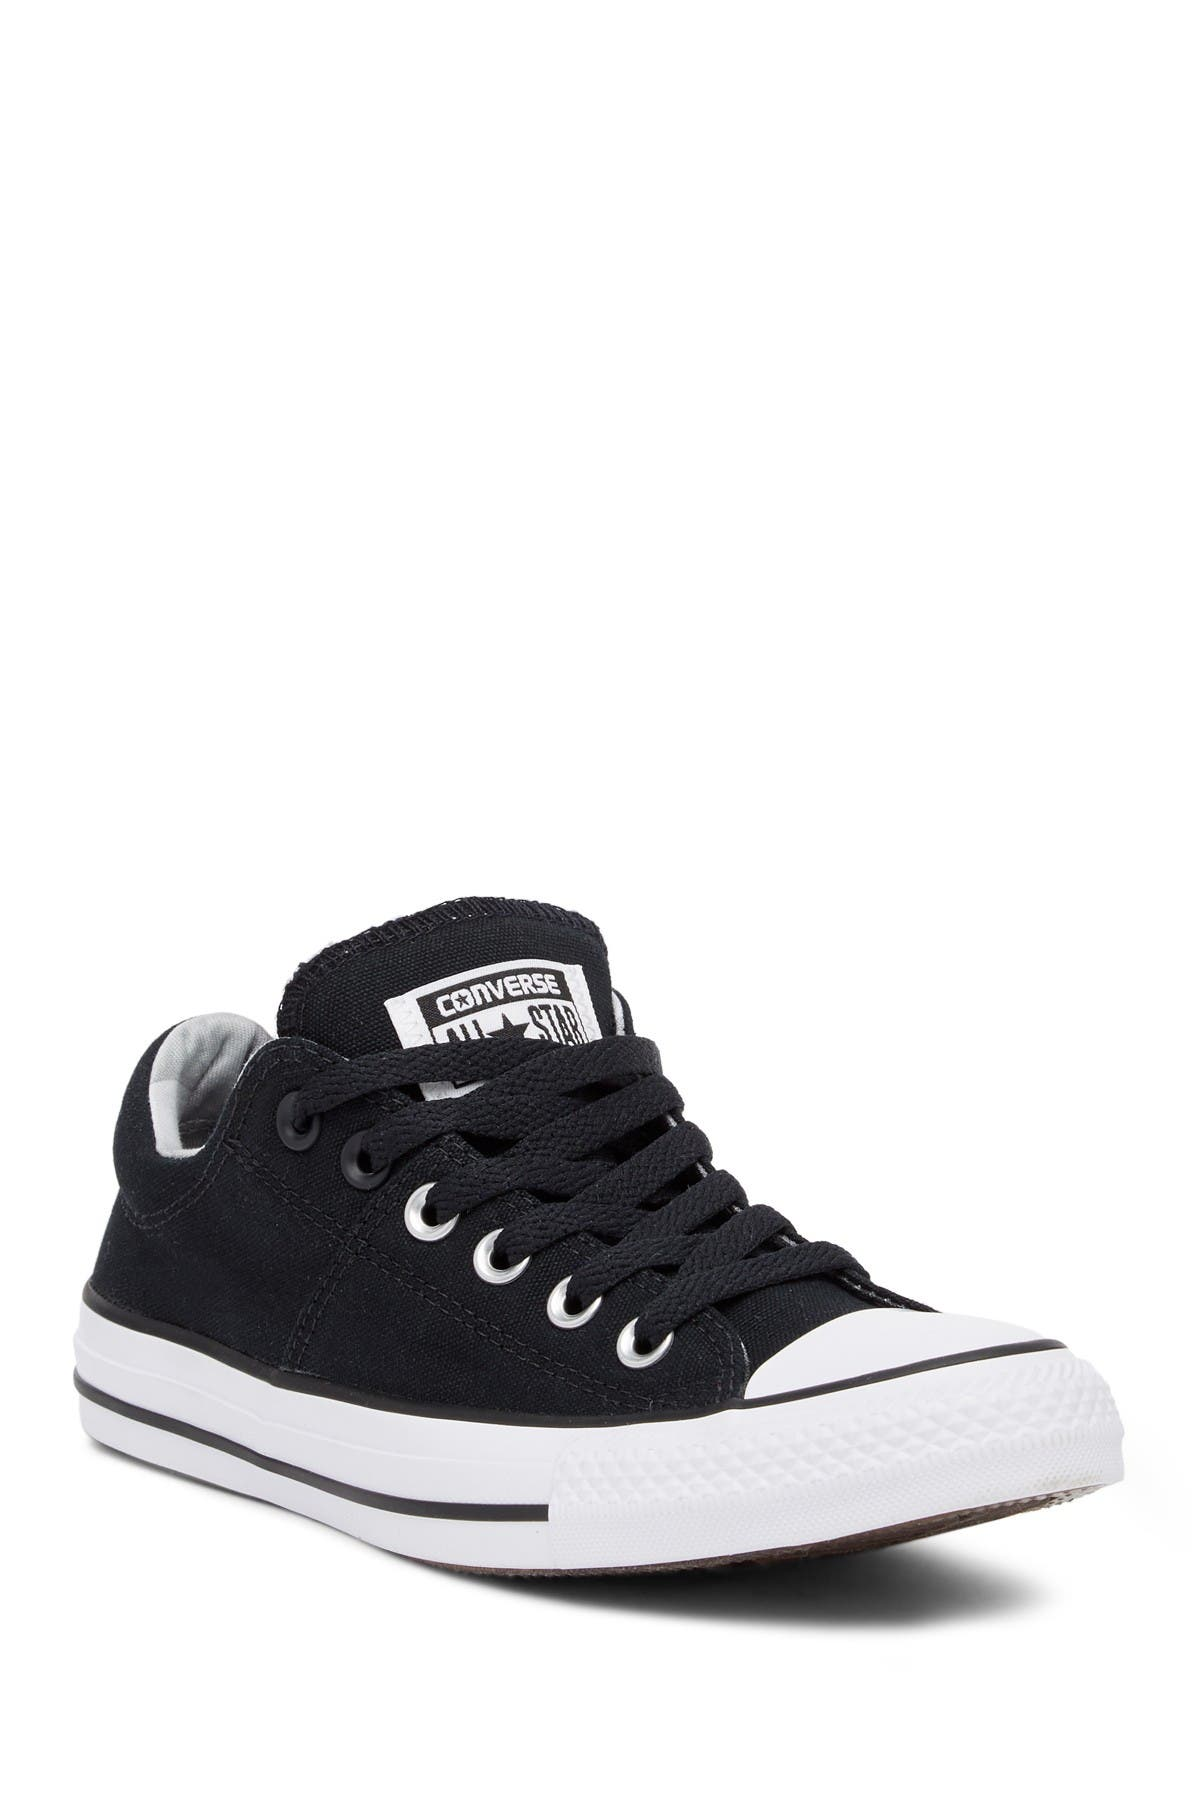 Chuck Taylor All-Star Madison Low Top